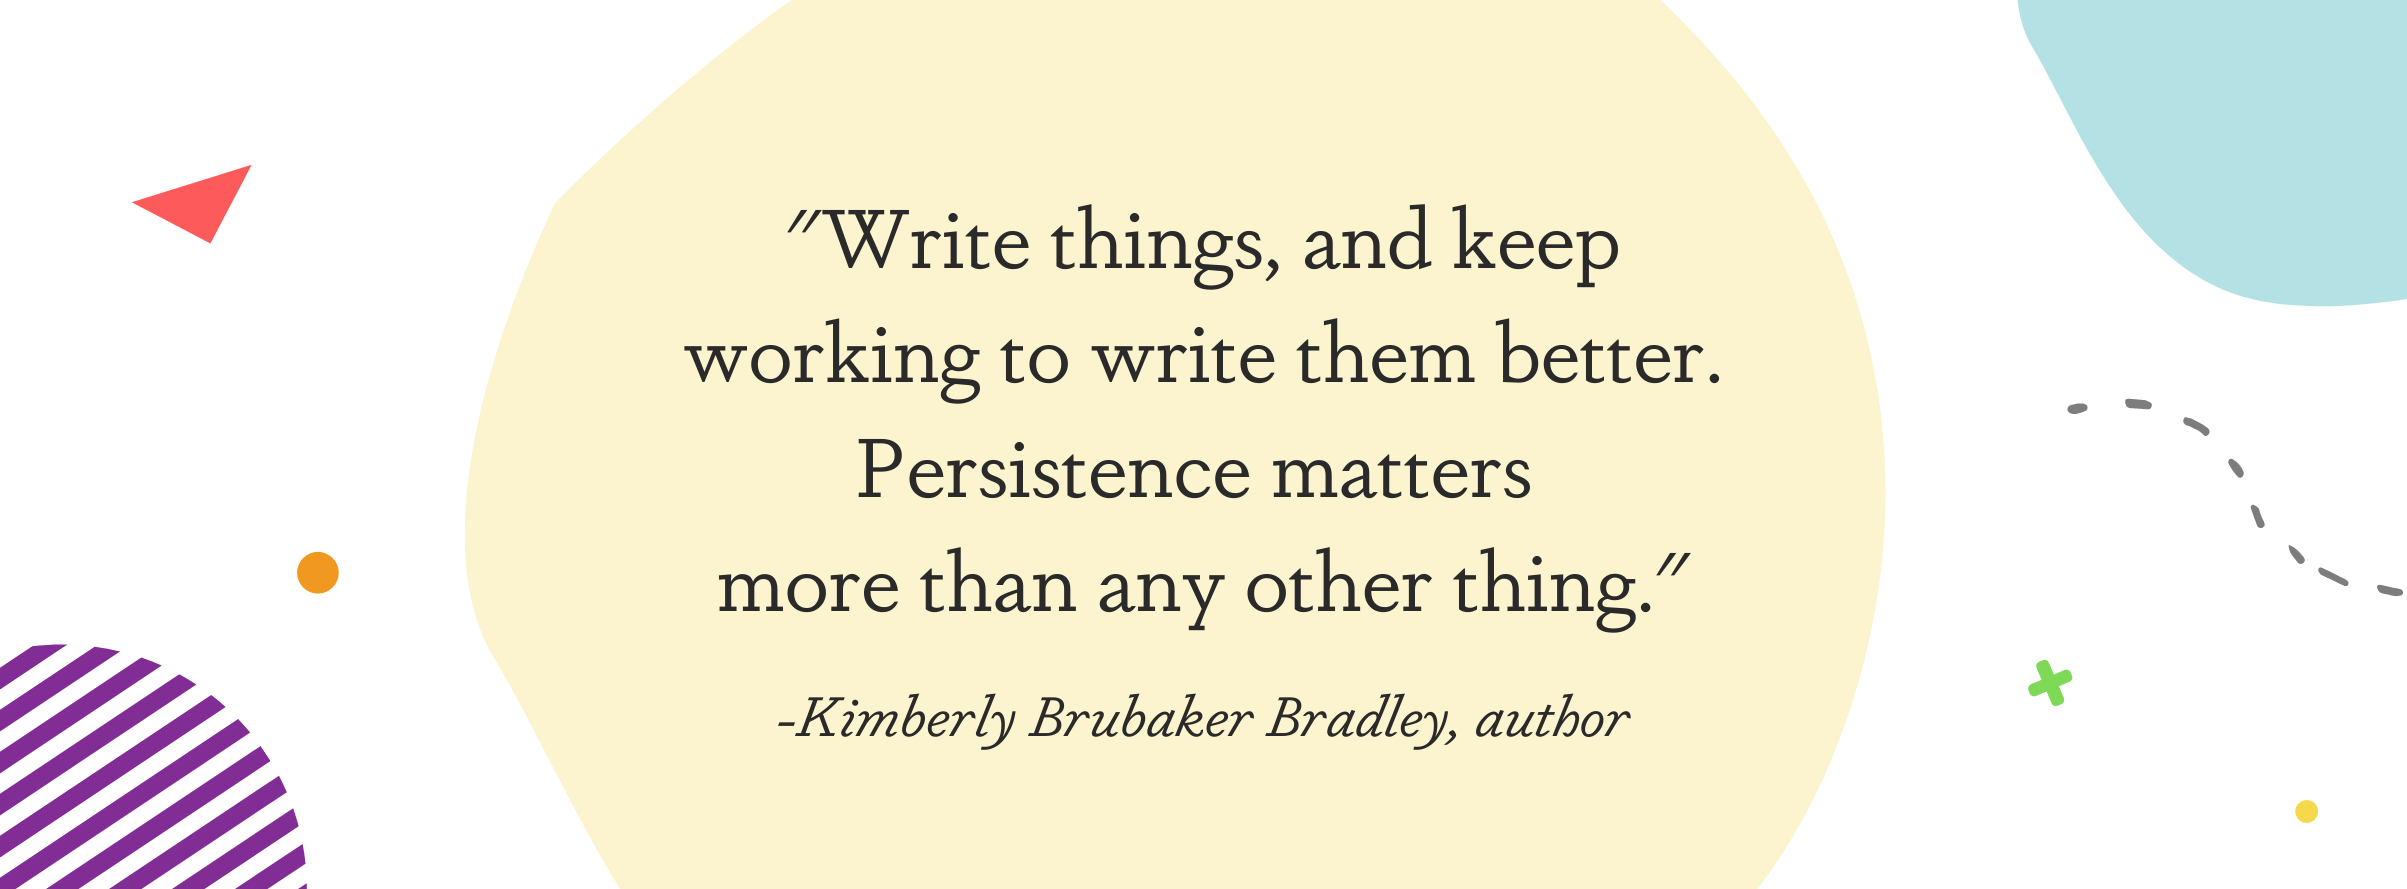 """Image displaying a quote from Kimberly Brubaker Bradley: """"Write things, and keep working to write them better. Persistence matters more than any other thing."""""""